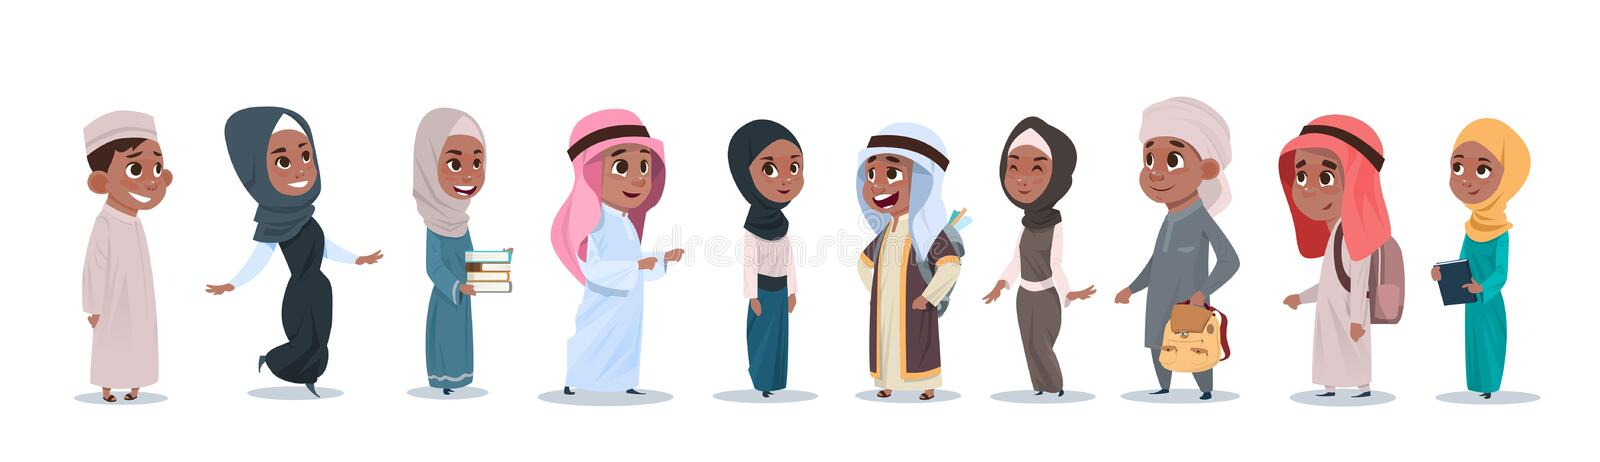 Arab Children Girls And Boys Group Small Cartoon Pupils Collection Muslim Students vector illustration